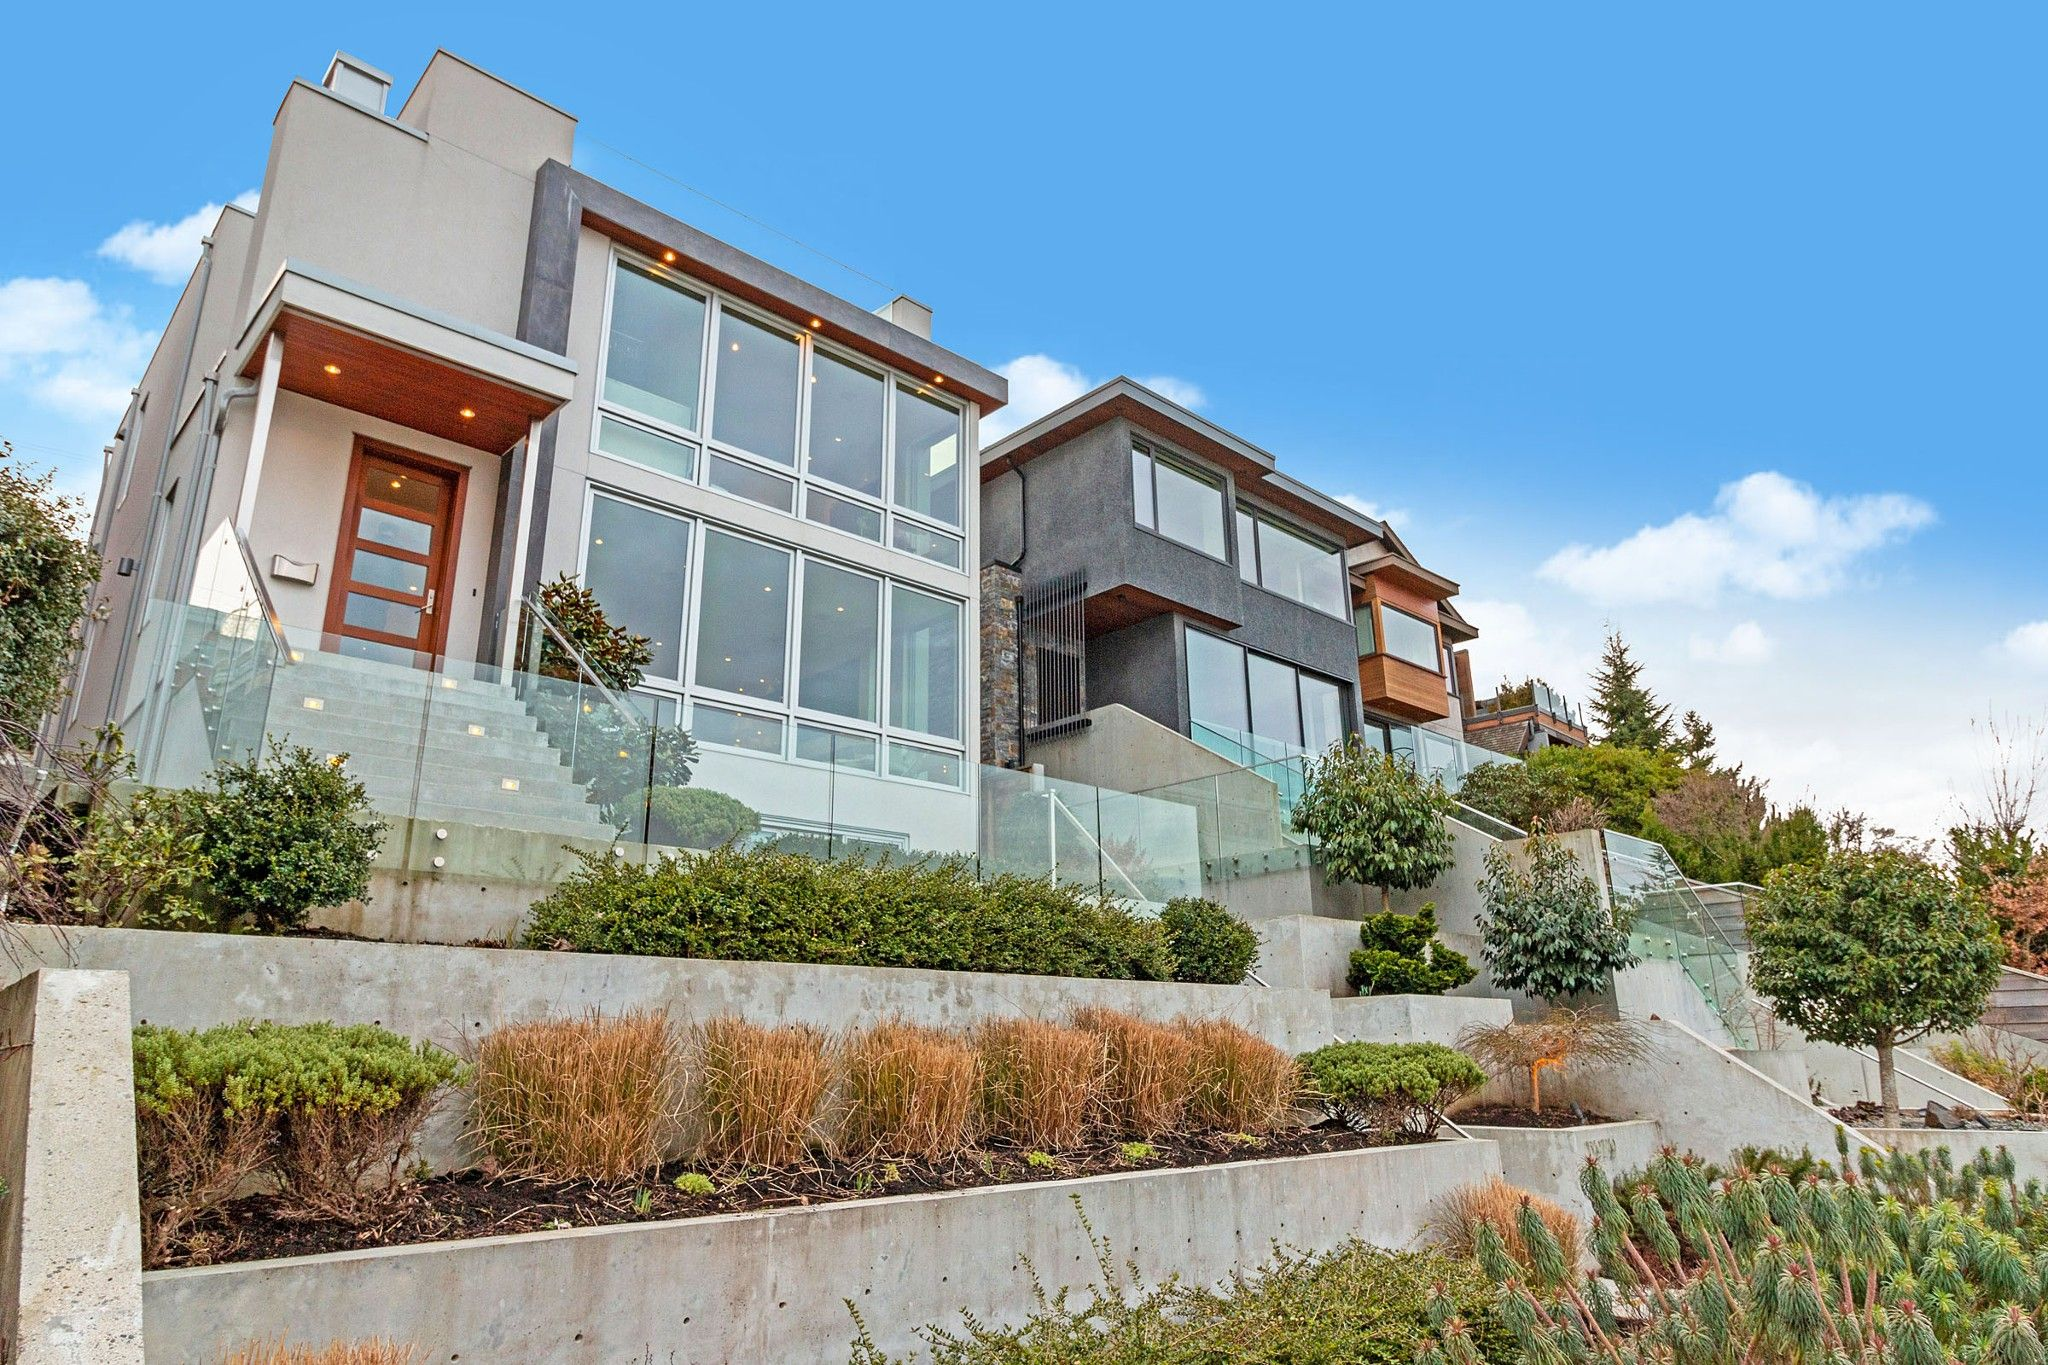 """Main Photo: 3979 PUGET Drive in Vancouver: Arbutus House for sale in """"MacKenzie Heights/Arbutus"""" (Vancouver West)  : MLS®# R2545911"""